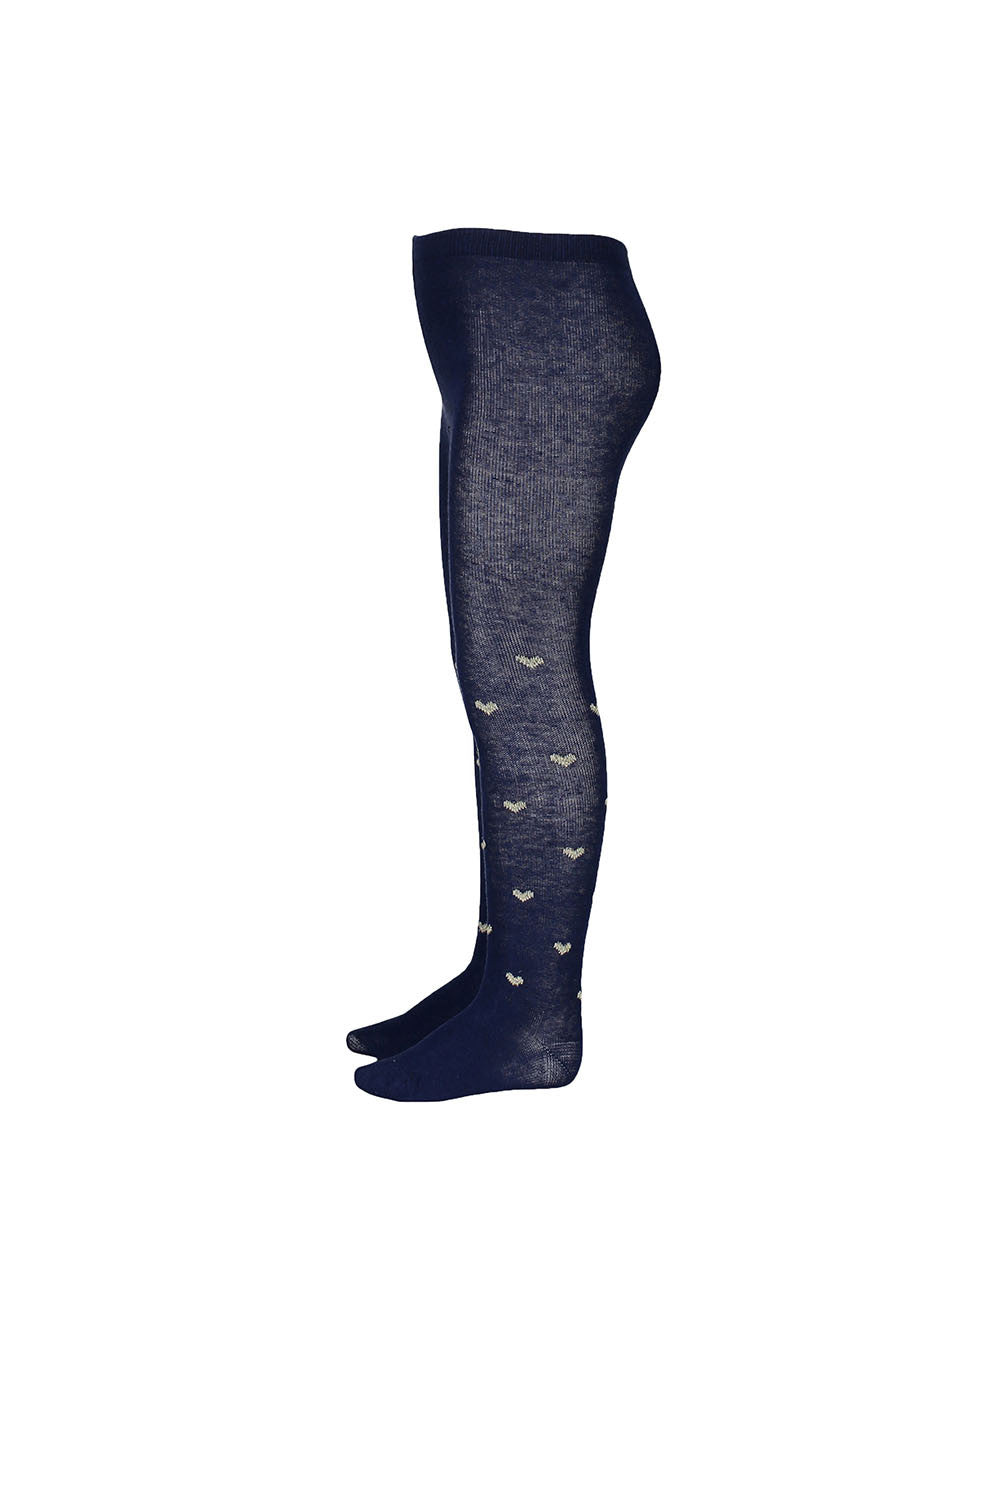 Jacquard Tights - Peacoat Spot